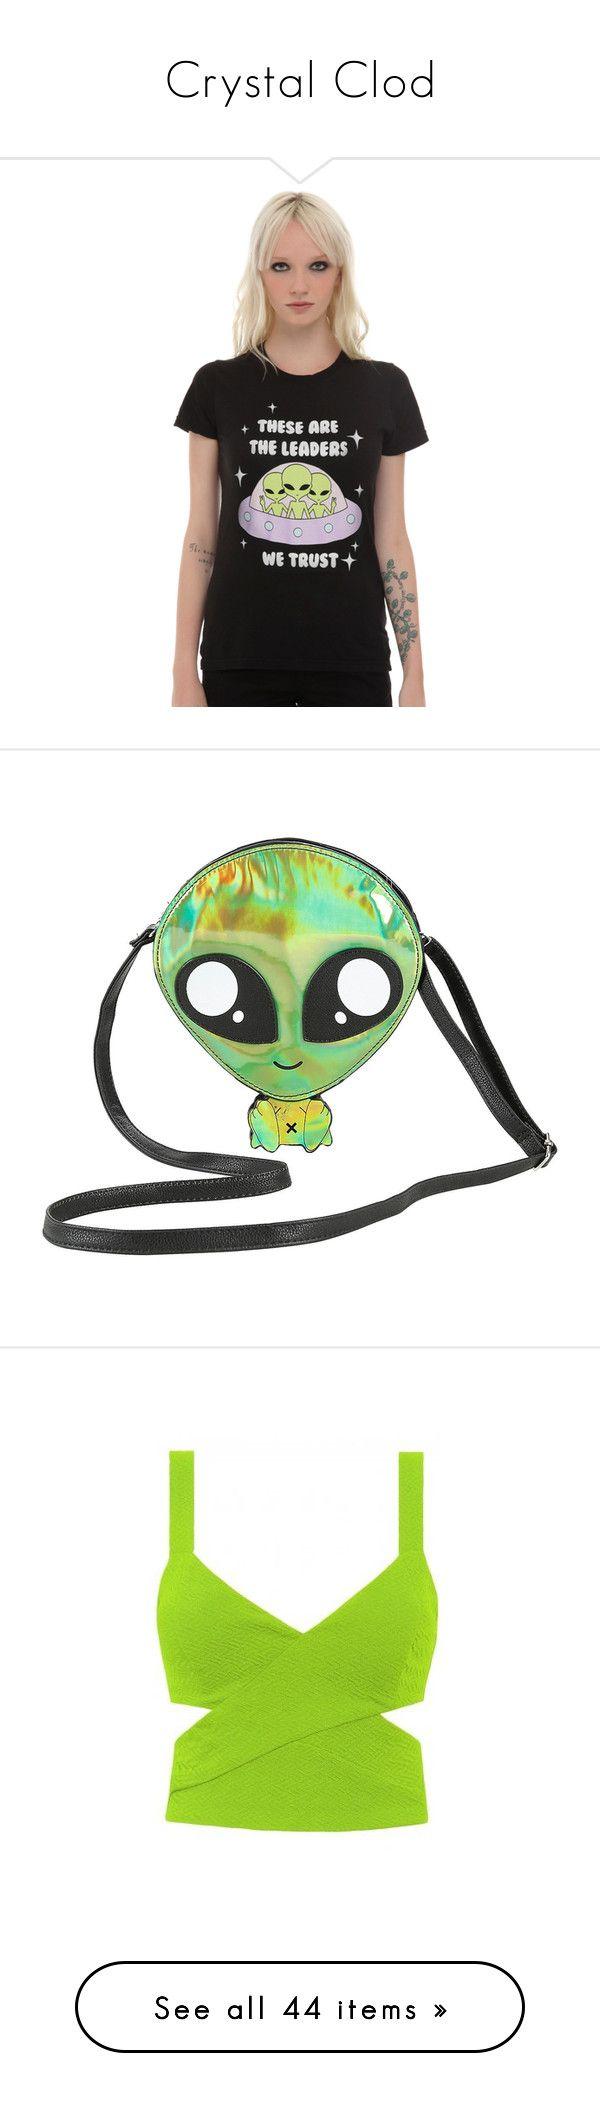 """""""Crystal Clod"""" by aimee-lowenstern ❤ liked on Polyvore featuring Su, peridot, tops, t-shirts, shirts, cosmic t shirt, galaxy t shirt, galaxy print top, galaxy top and nebula t shirt"""